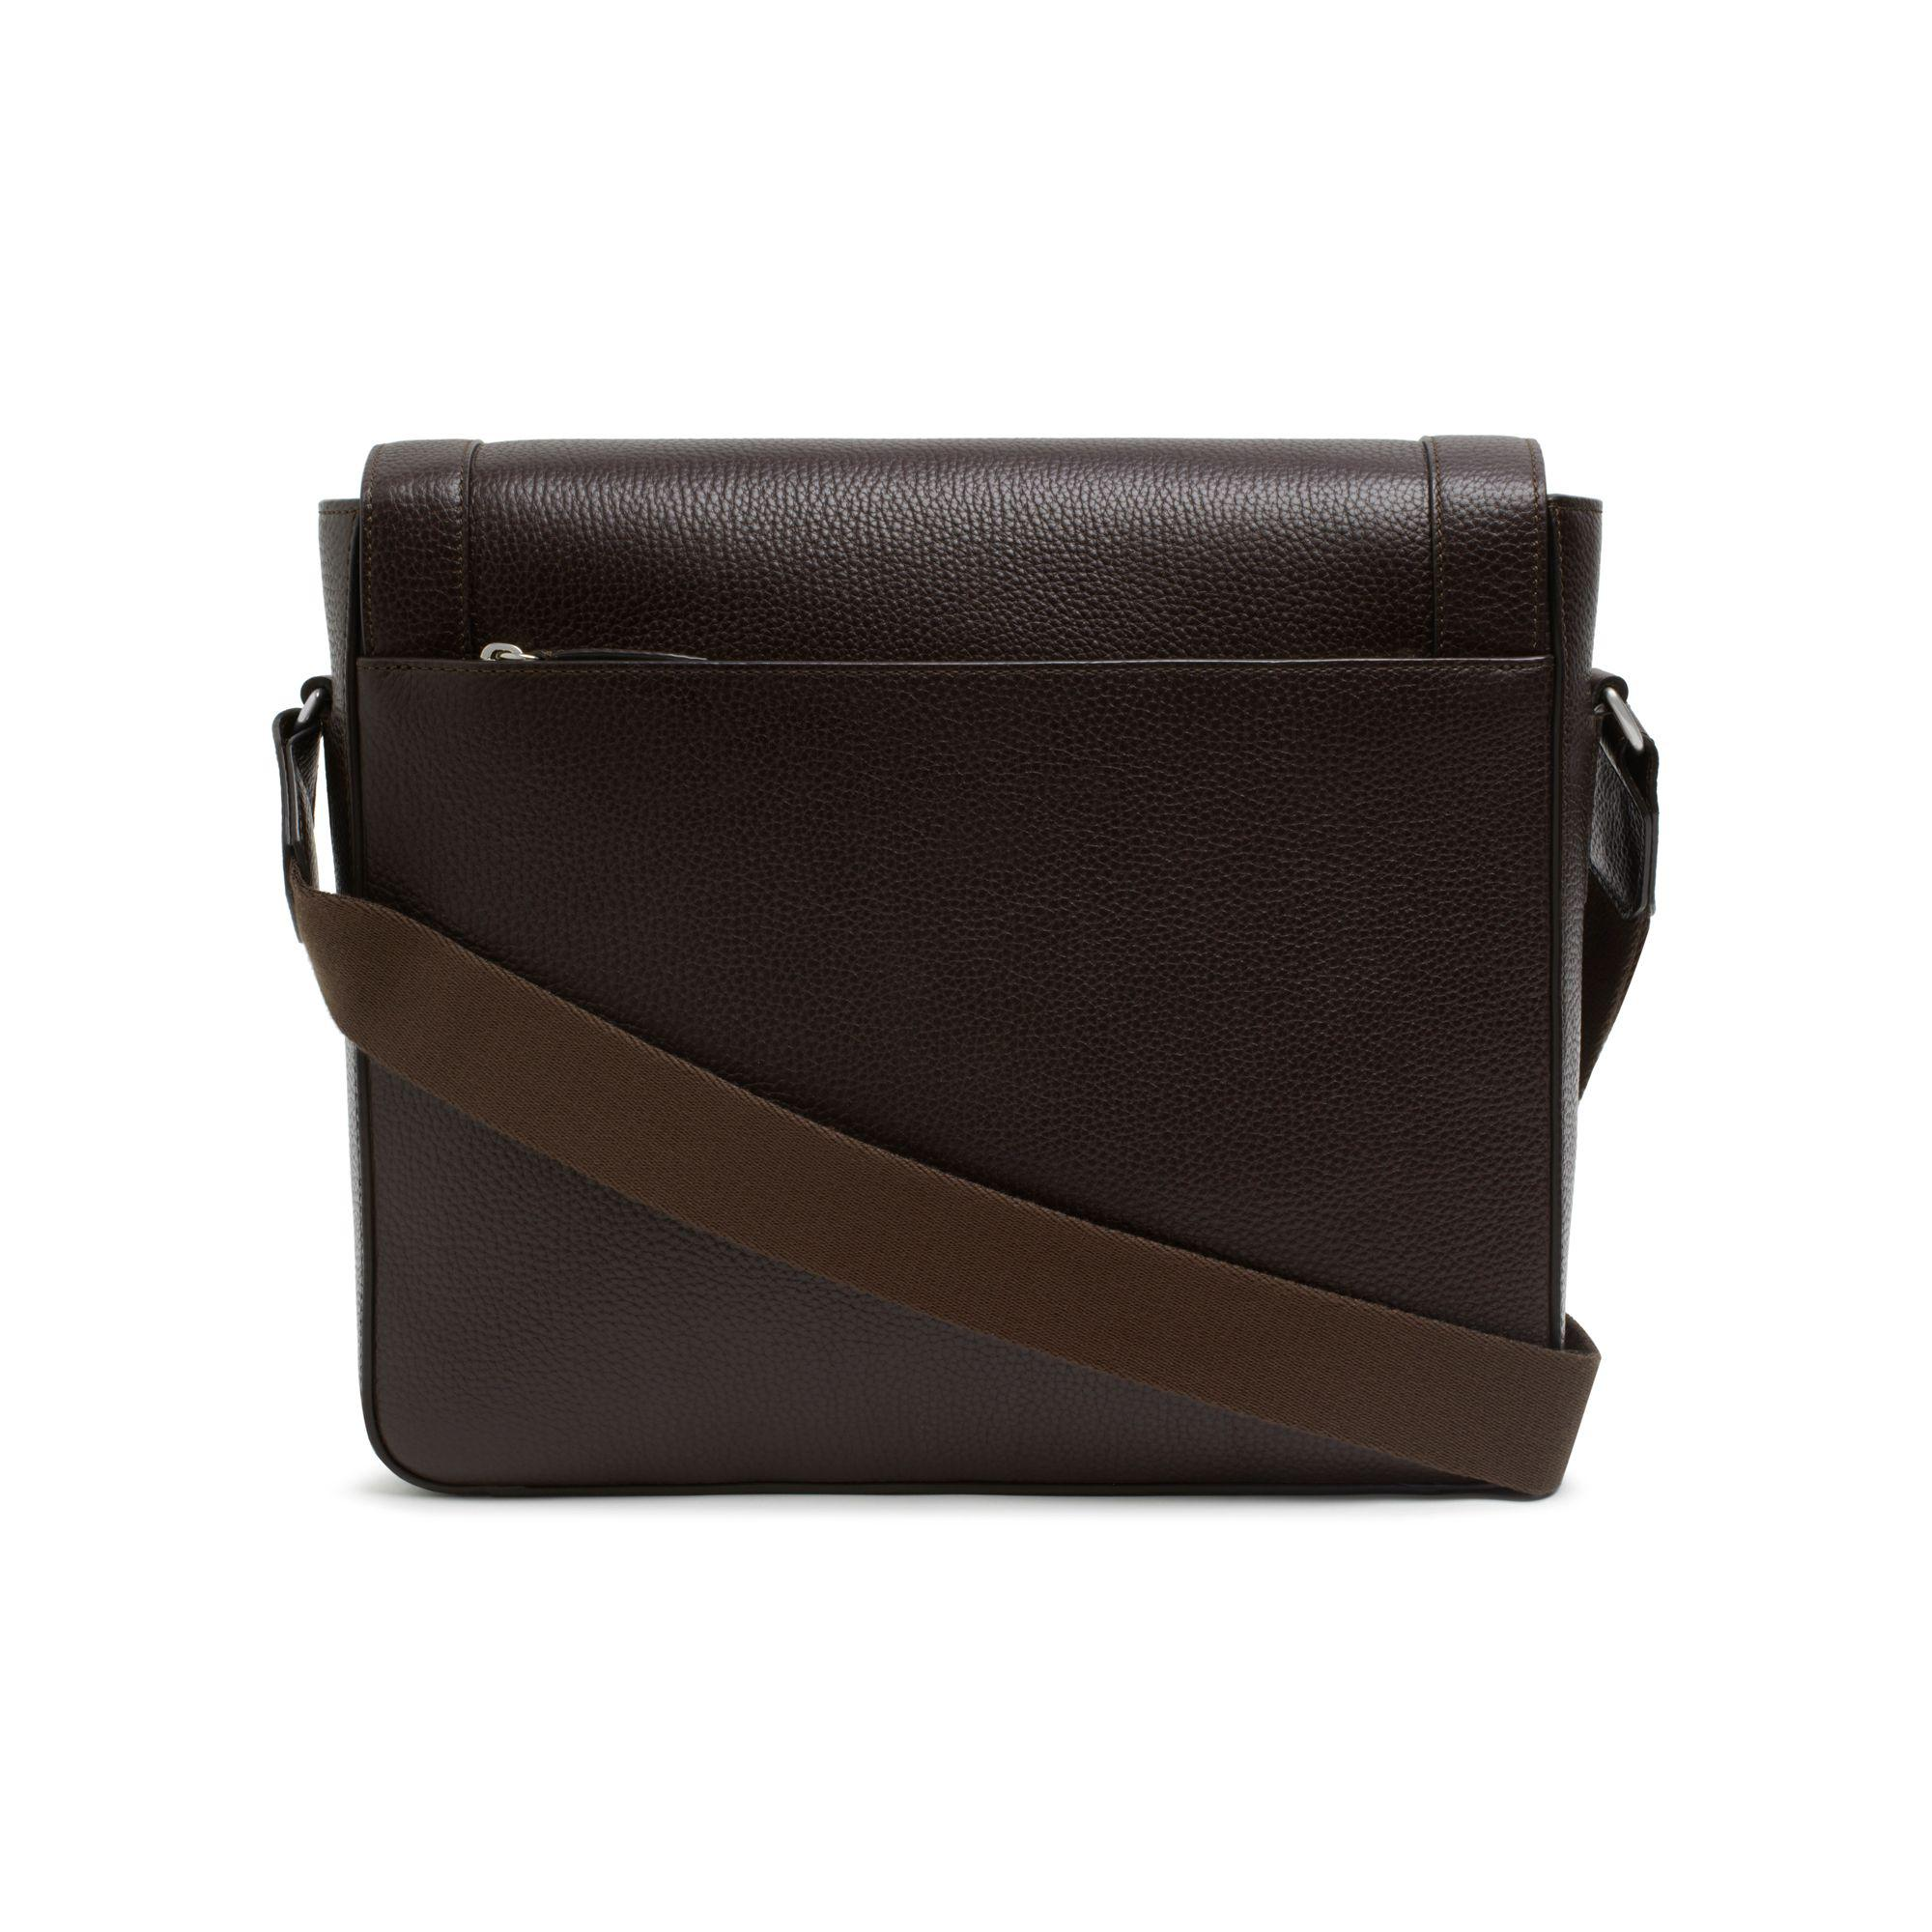 2ebe989930 141ca bbefb  promo code lyst mulberry belgrave messenger in brown for men  ea40e 0d820